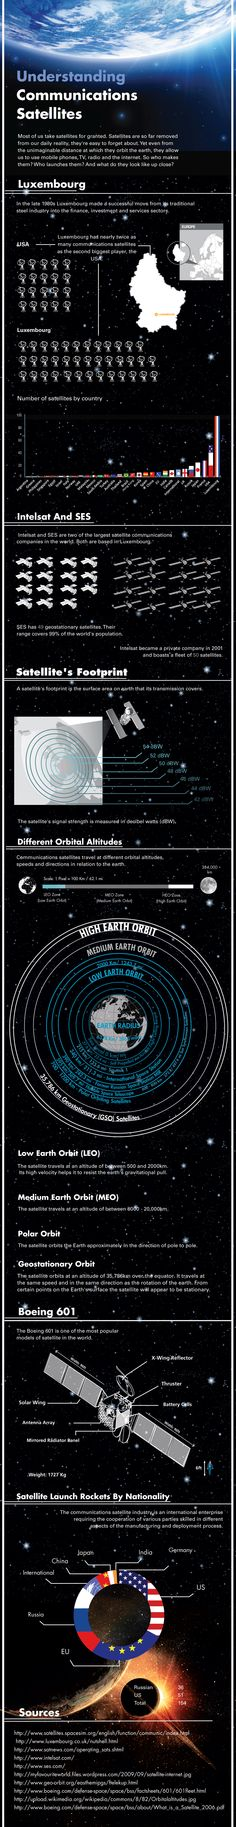 Infographic - Incredible World of Communication Satellites